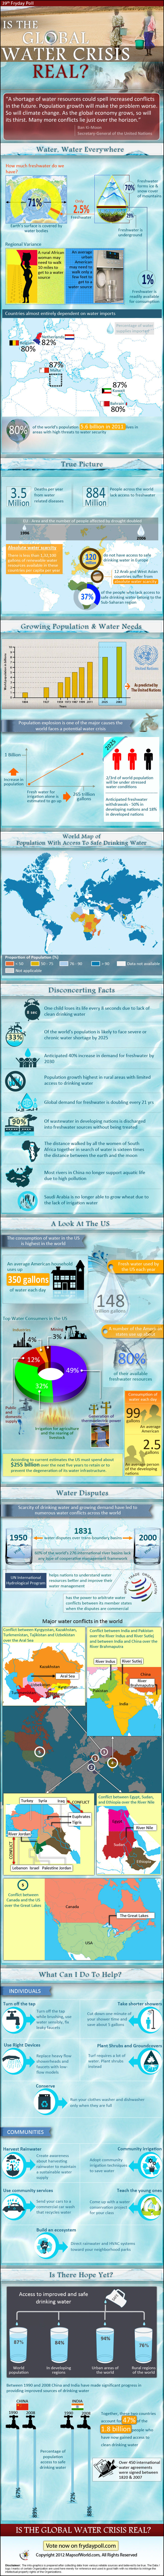 Global Water Crisis-Infographic